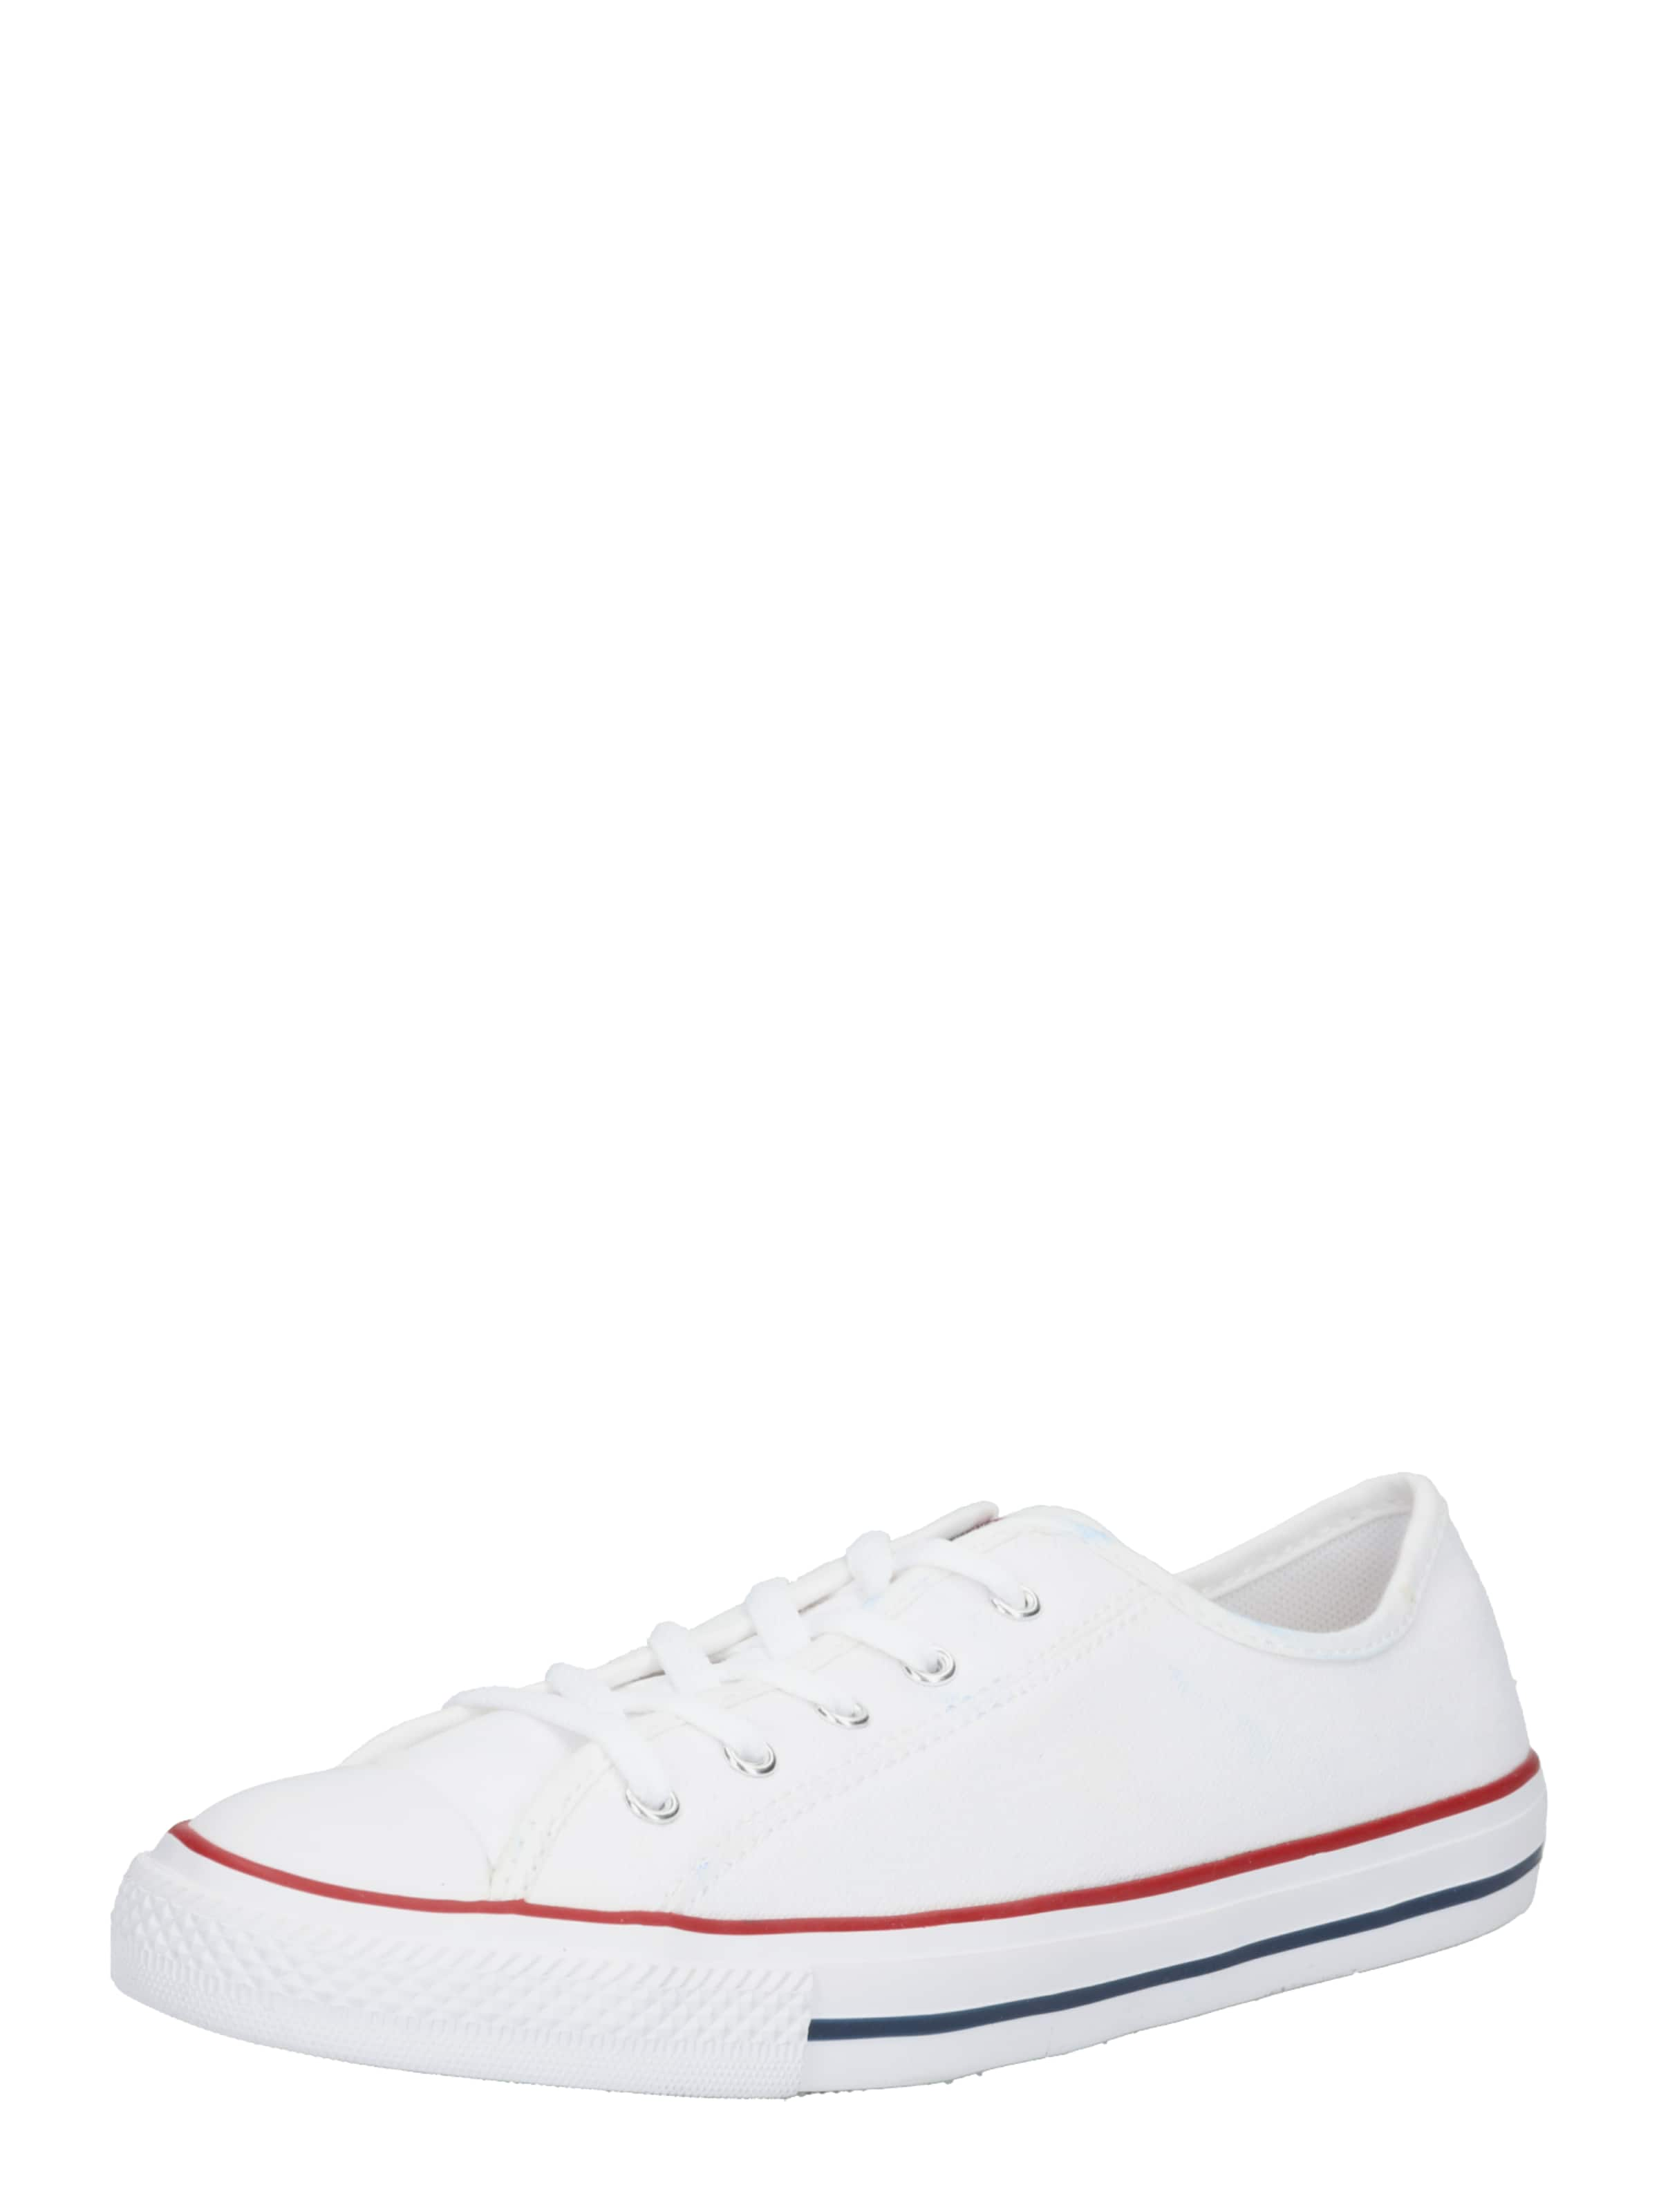 CONVERSE Turnschuhe 'CHUCK TAYLOR ALL STAR DAINTY GS BASIC CANVAS - OX' in weiß